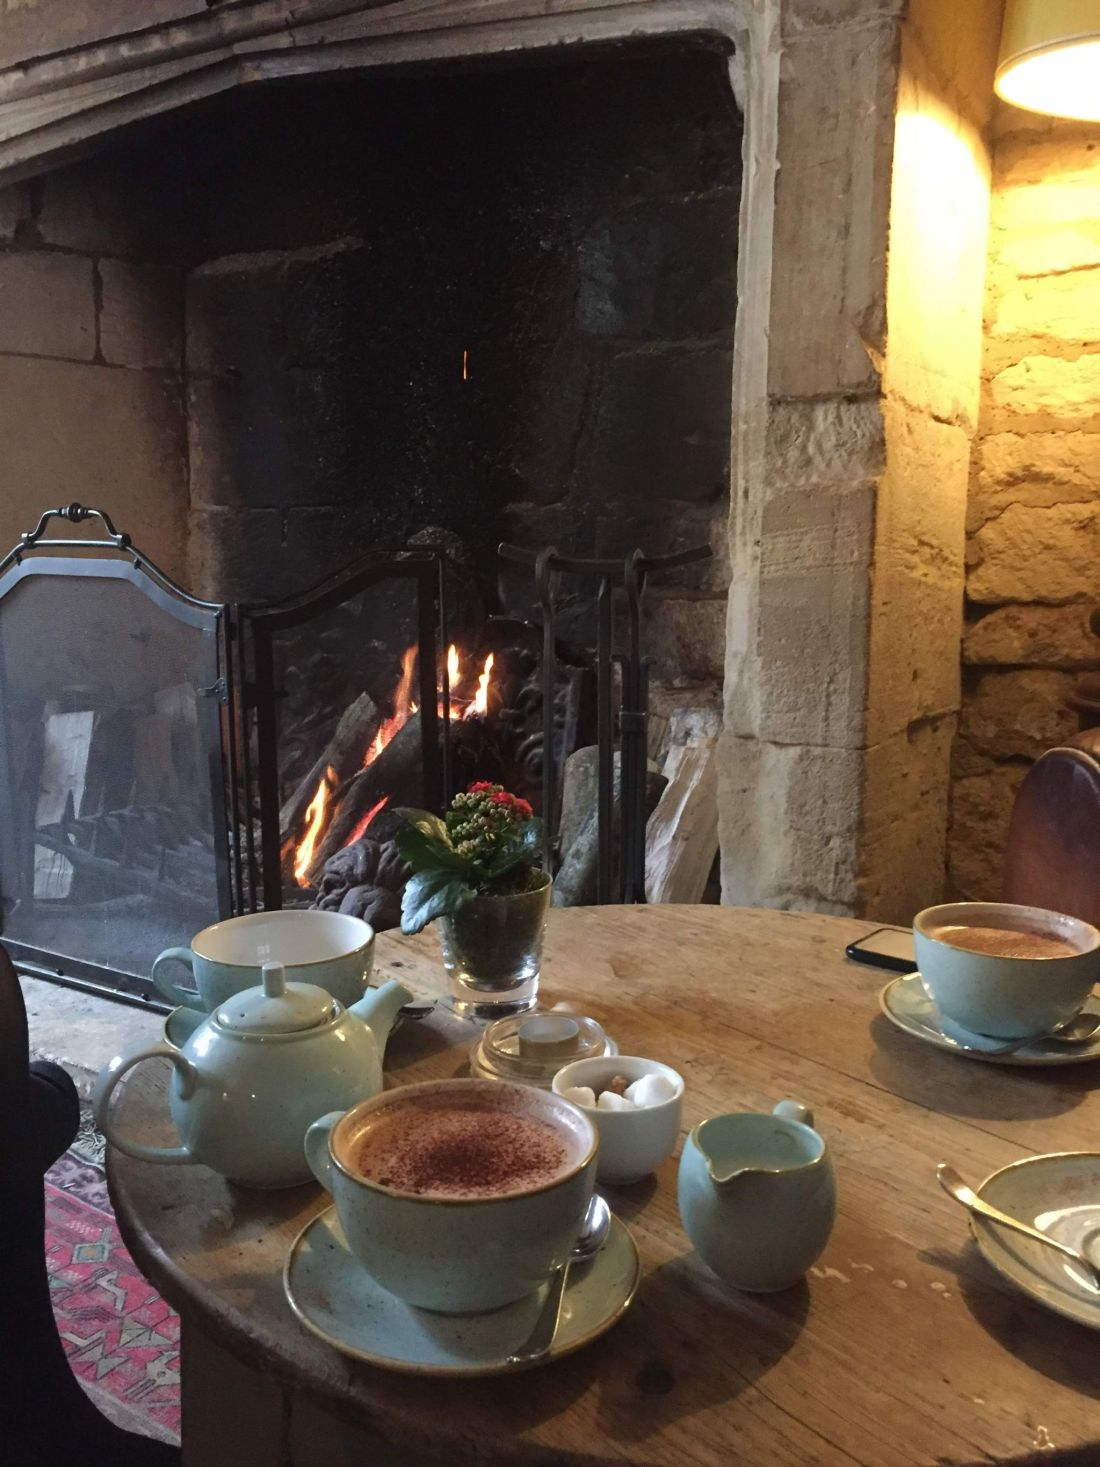 Drinks by the fireplace at The Lion, Winchcombe